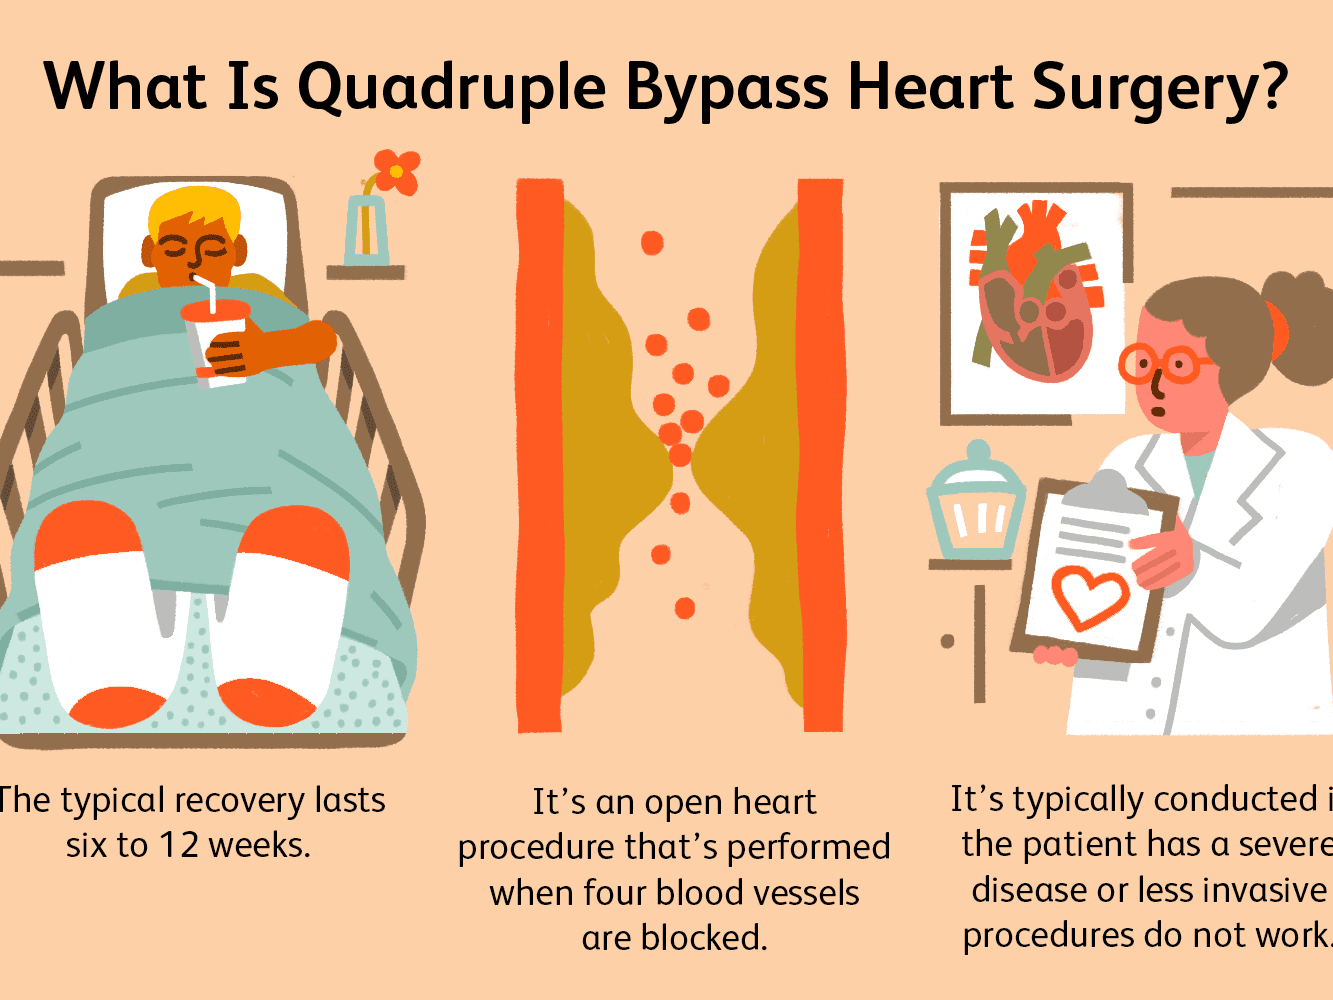 Quadruple Bypass Heart Surgery Process And Recovery